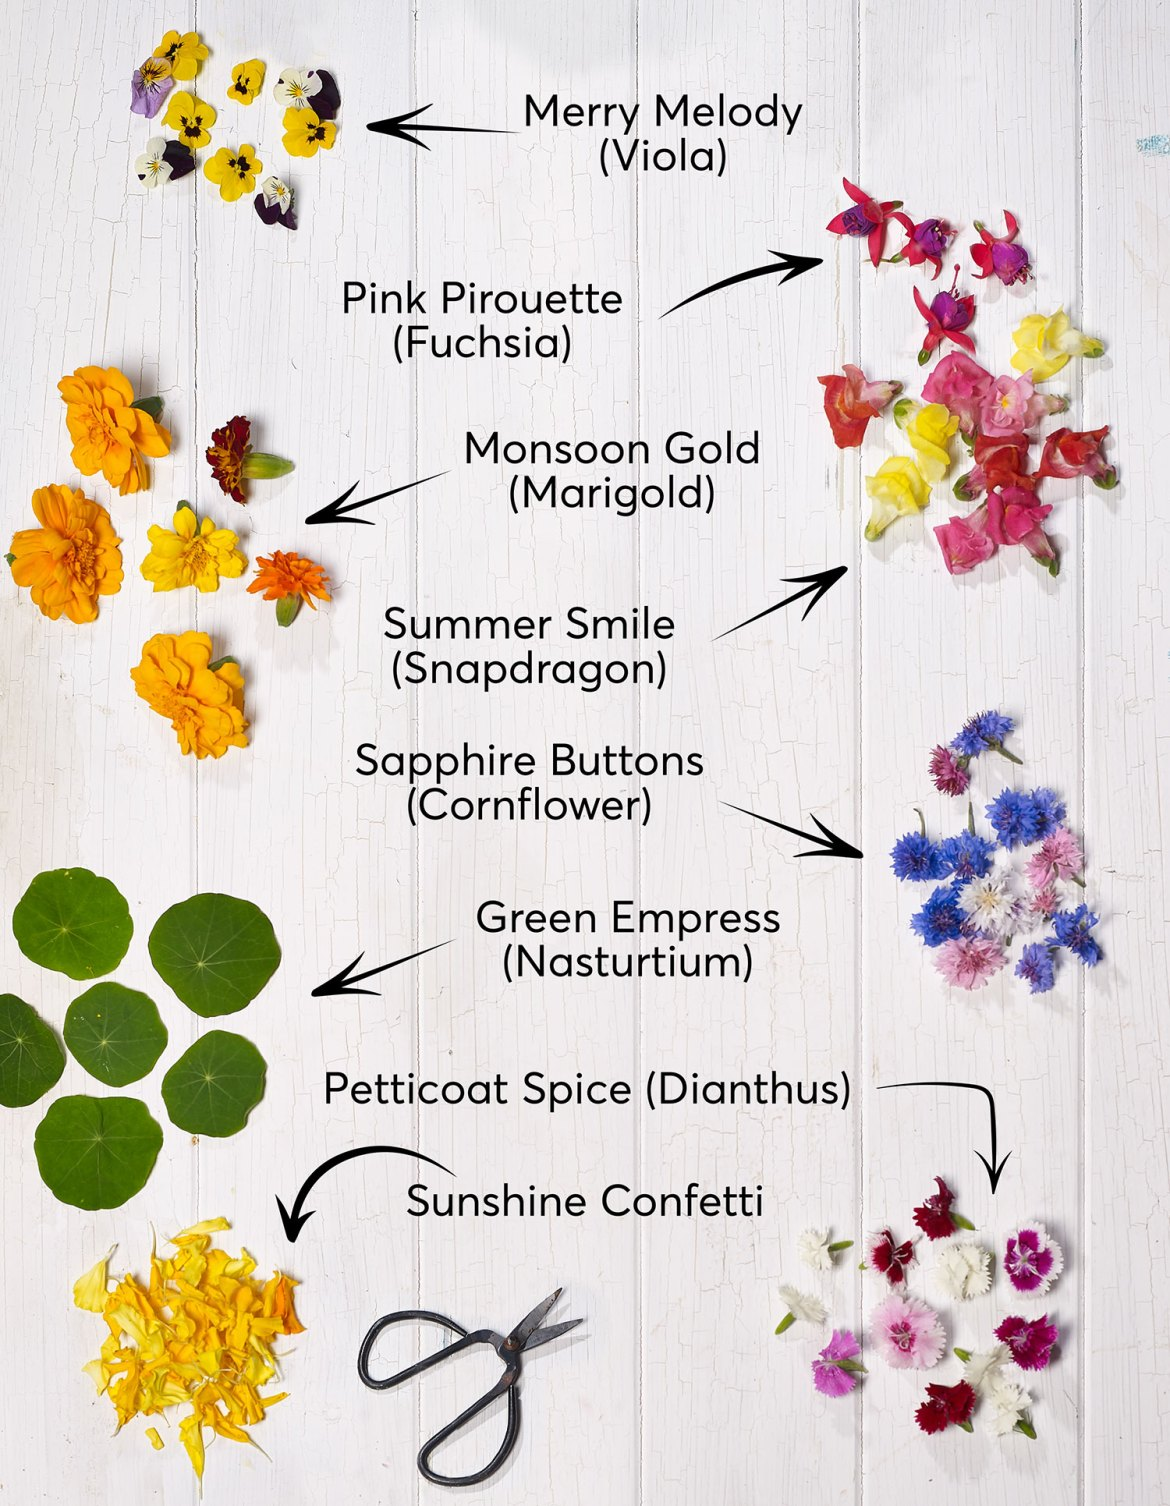 Flowerdale Farm - a guide to edible flowers